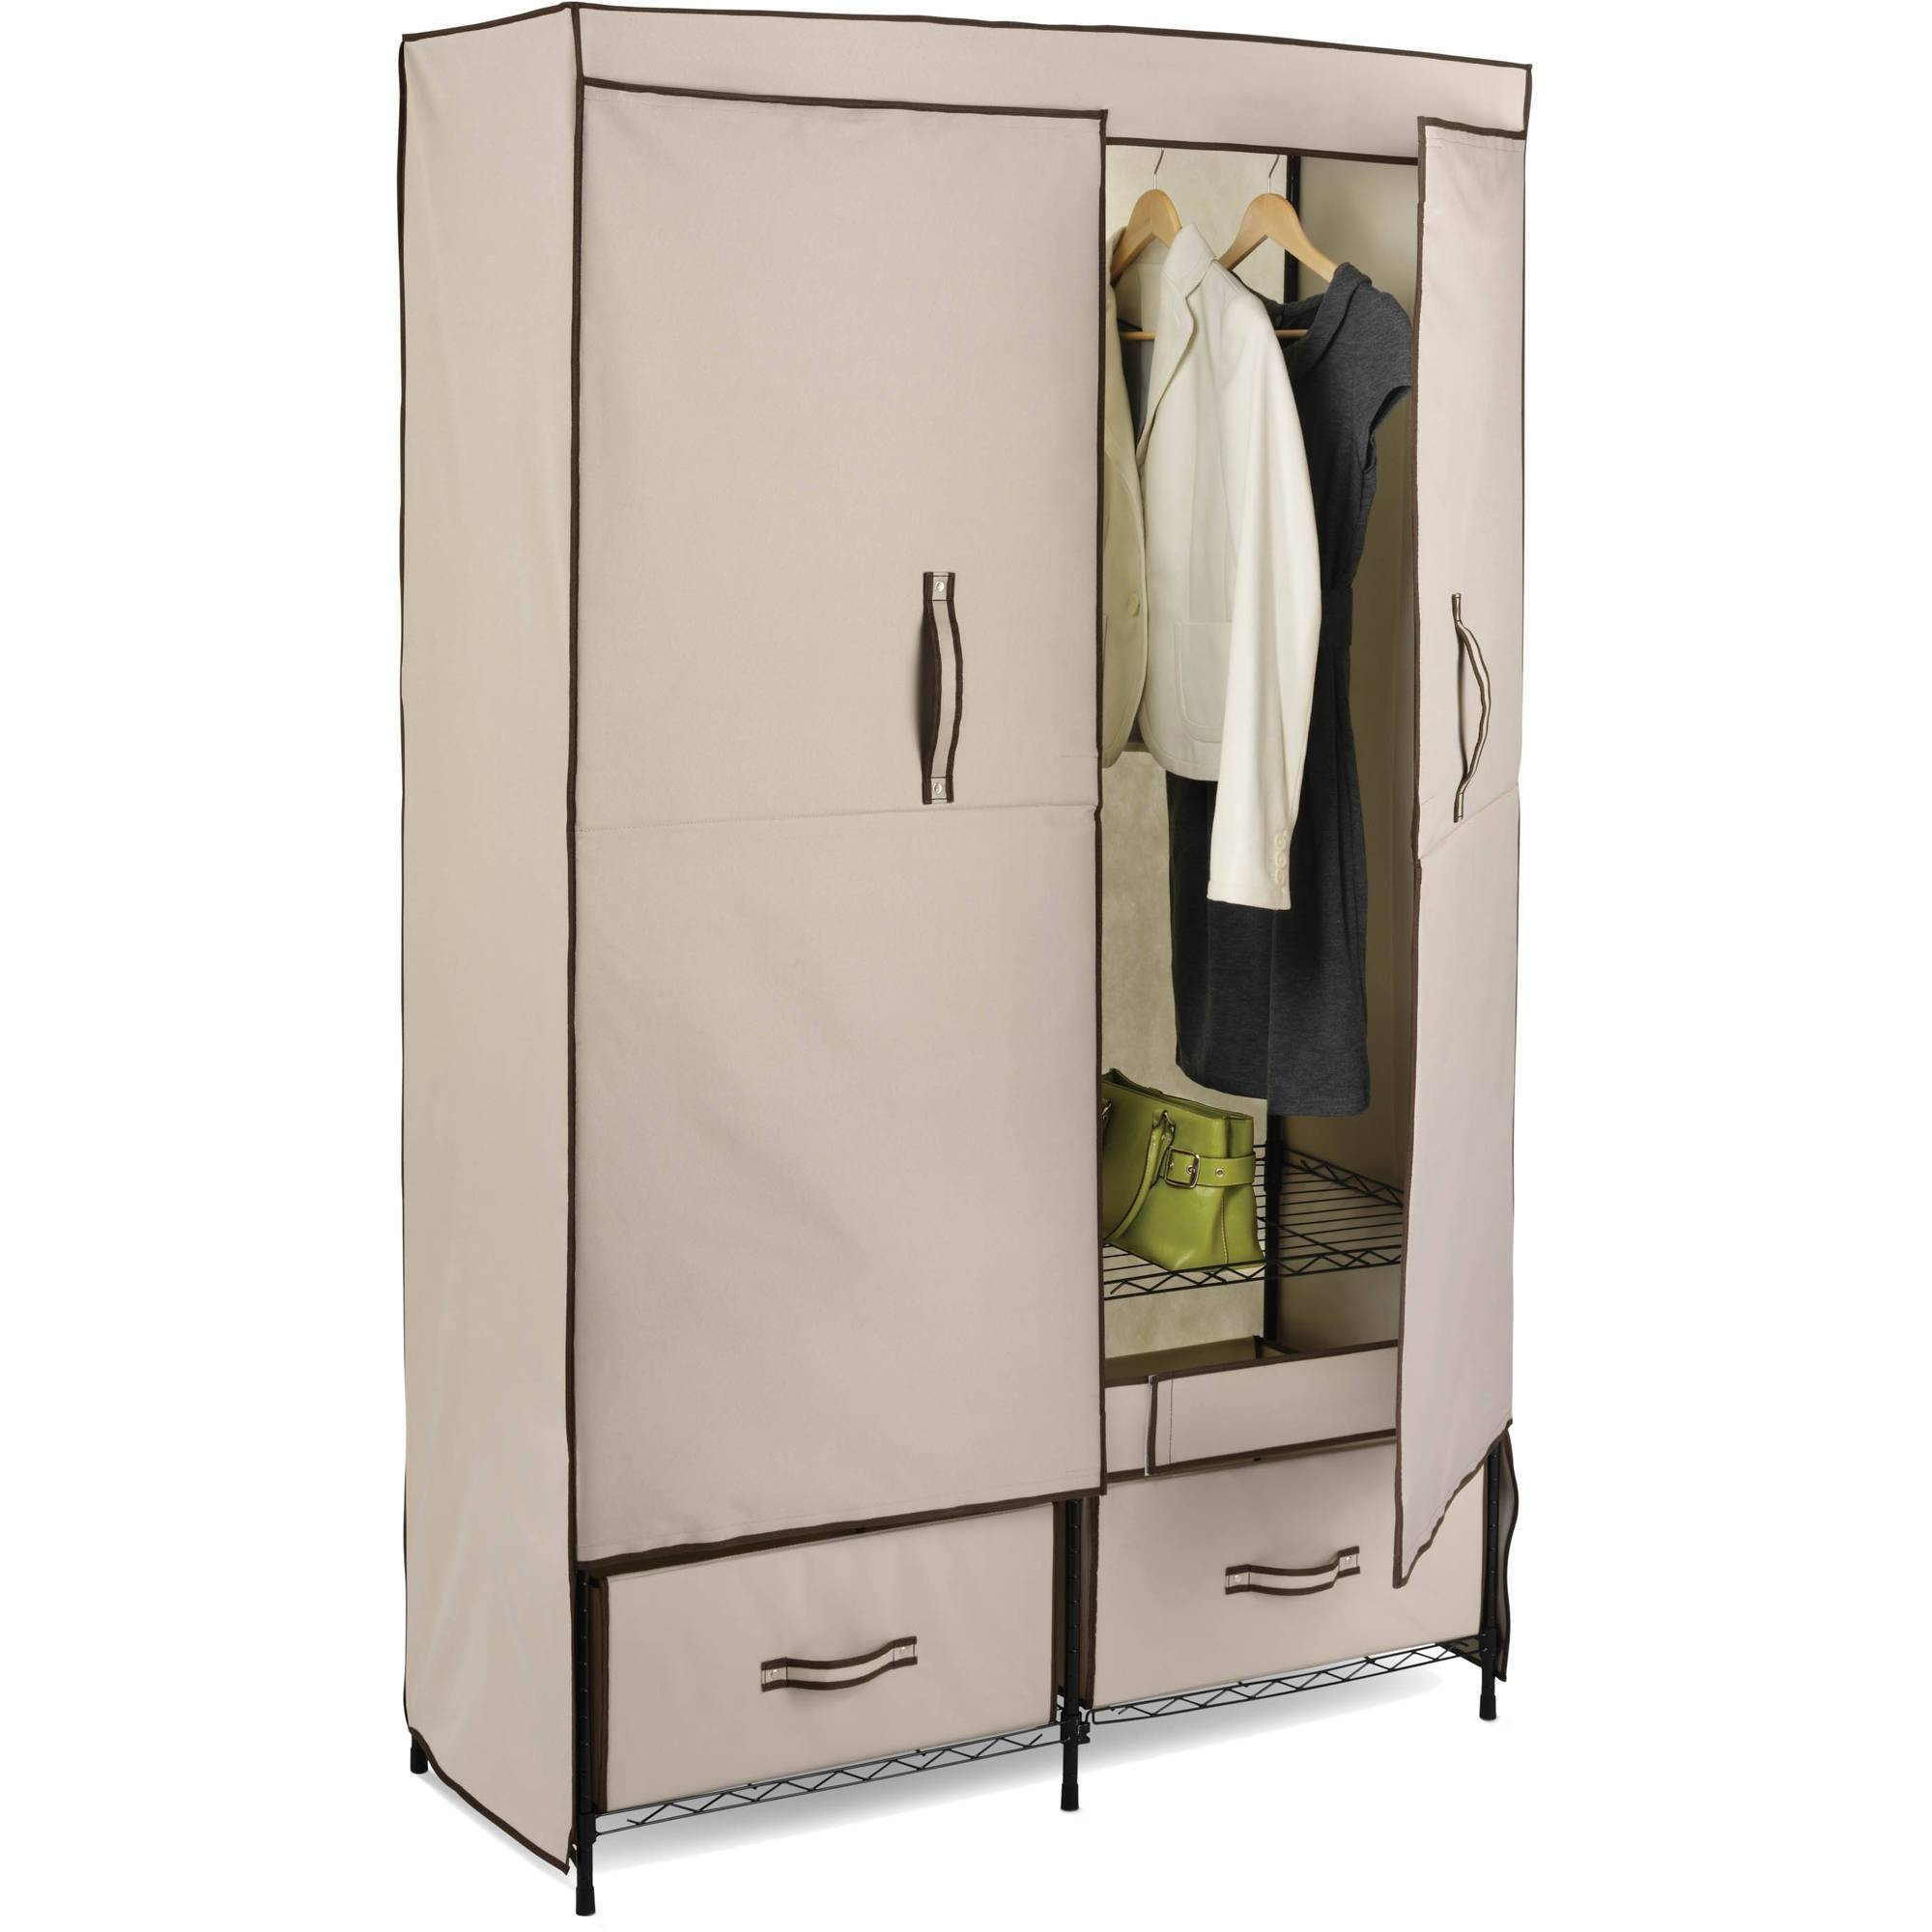 Honey Can Do Double-Door Wardrobe With Two Drawers - Walmart for Wardrobe With Shelves and Drawers (Image 15 of 30)